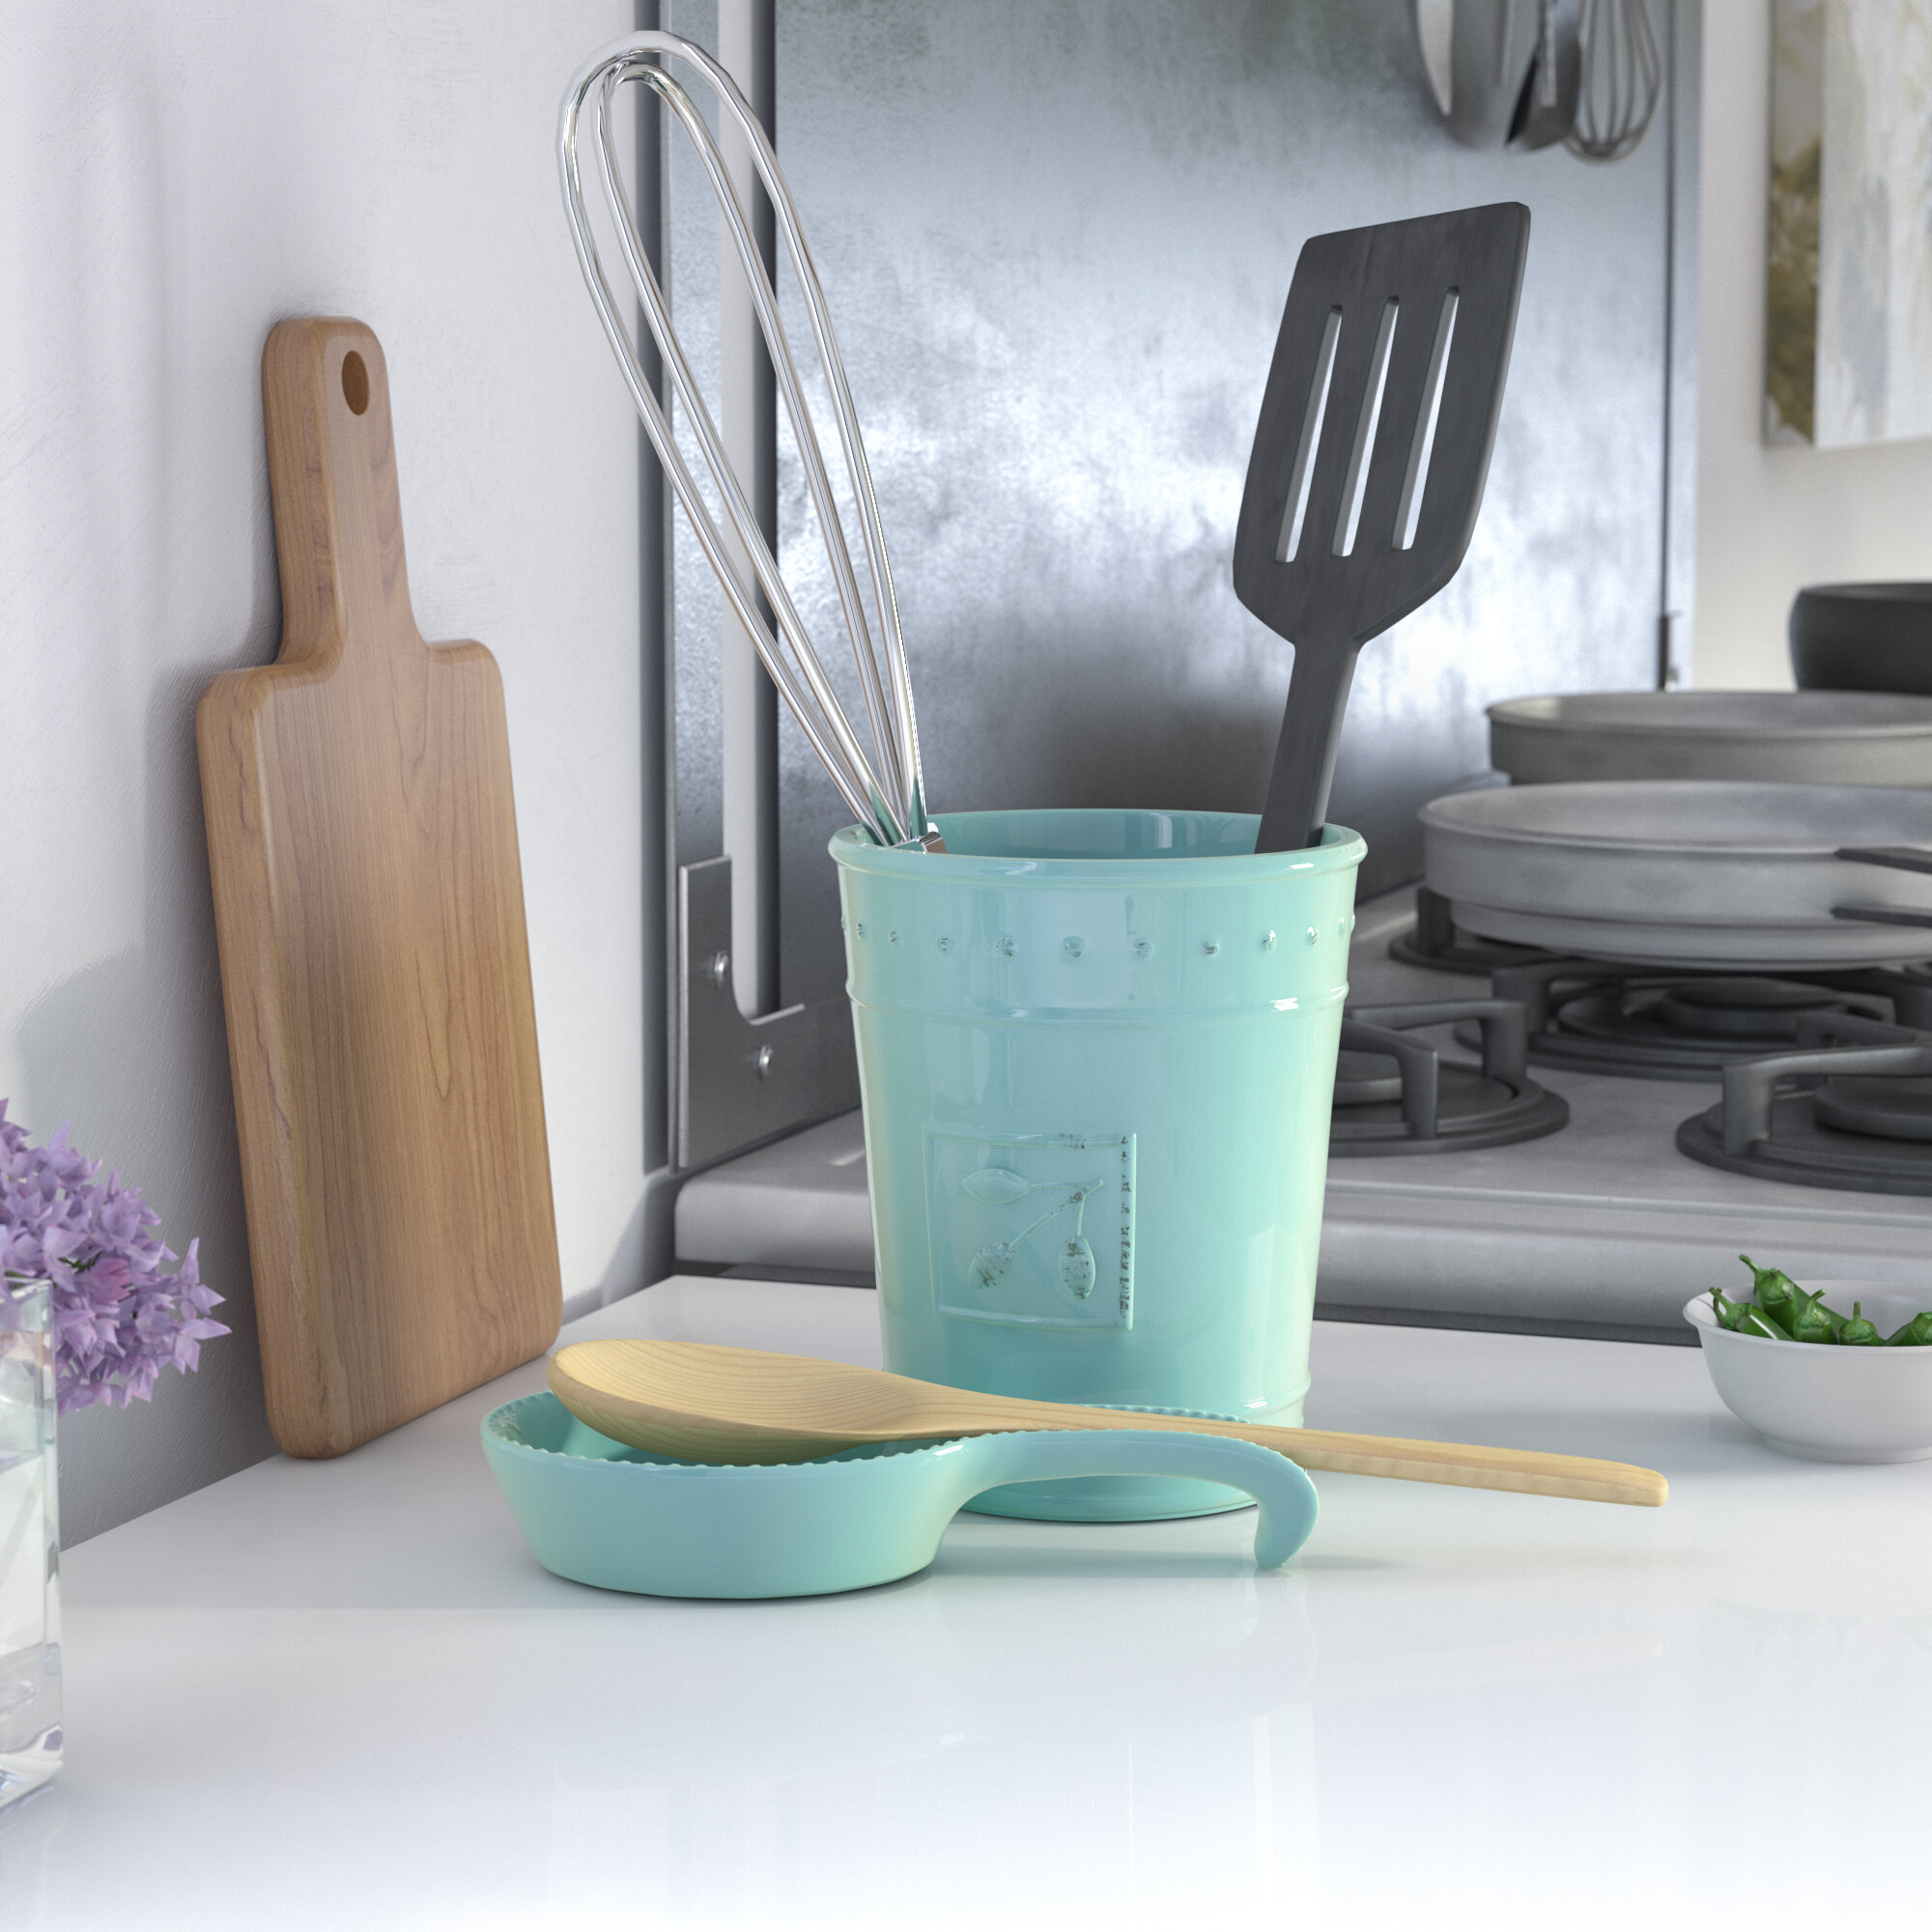 Lark Manor Spoon Rest and Utensil Crock & Reviews | Wayfair